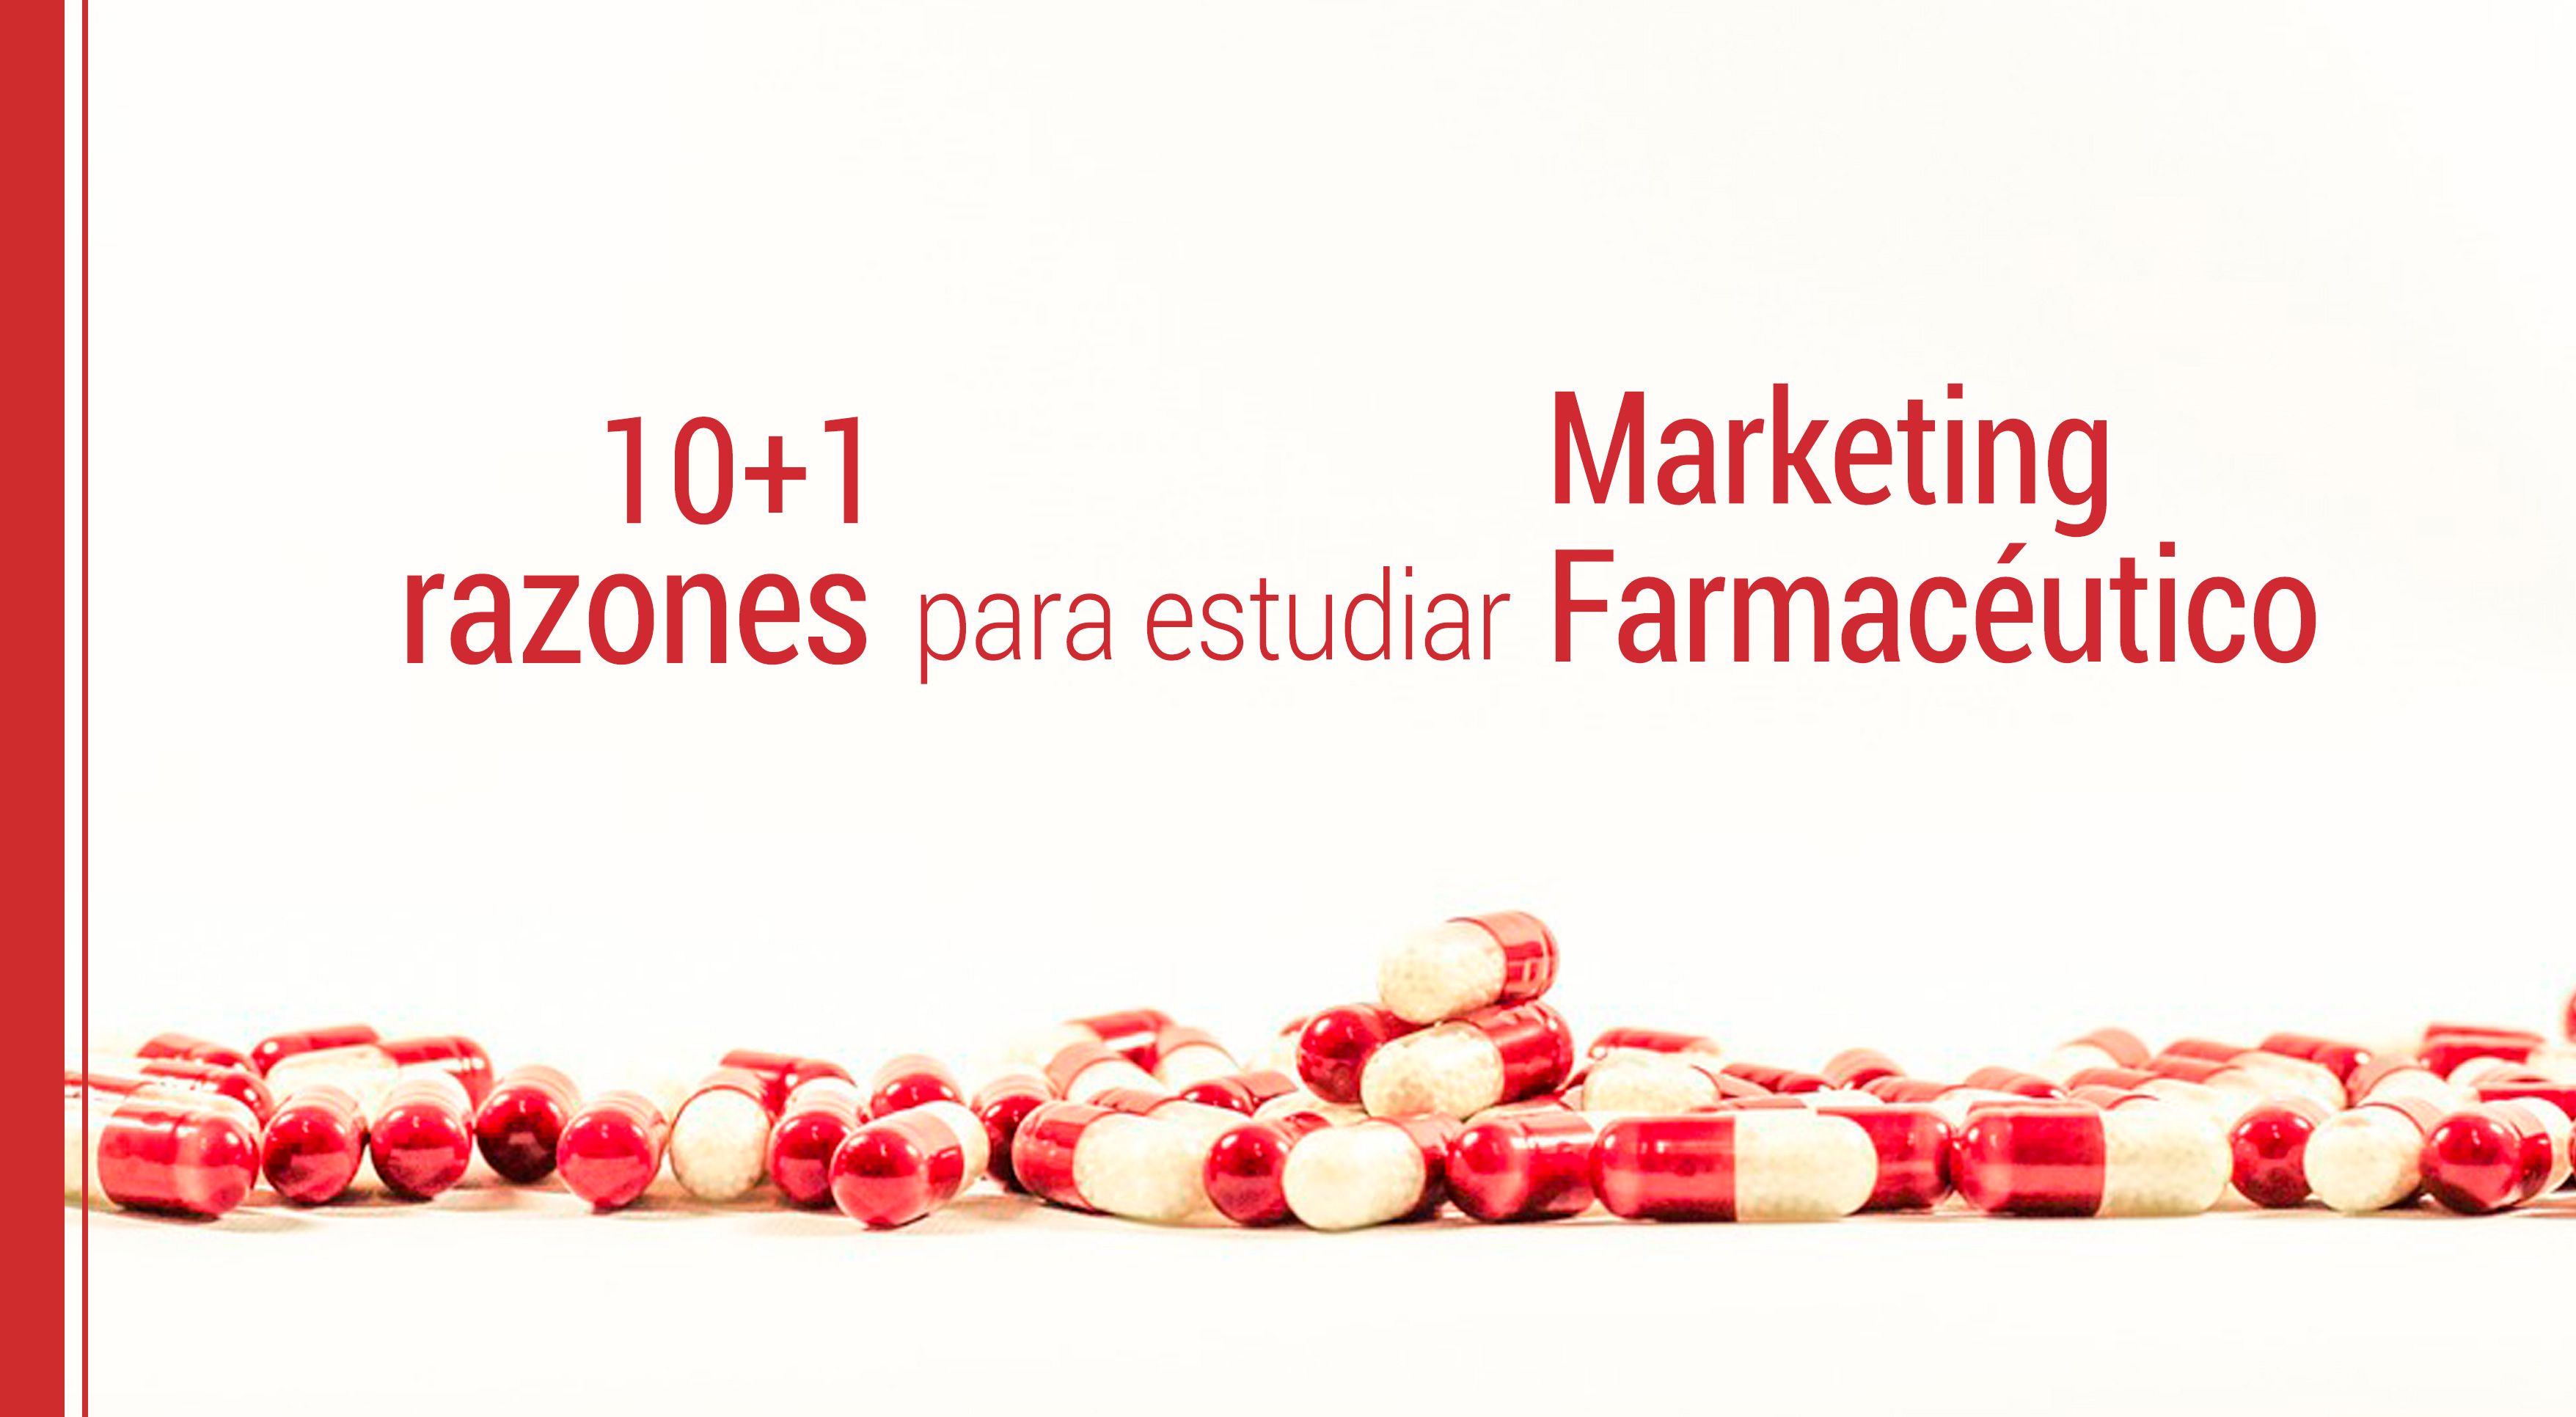 razones-para-estudiar-marketing-farmaceutico 10 razones para estudiar marketing farmacéutico